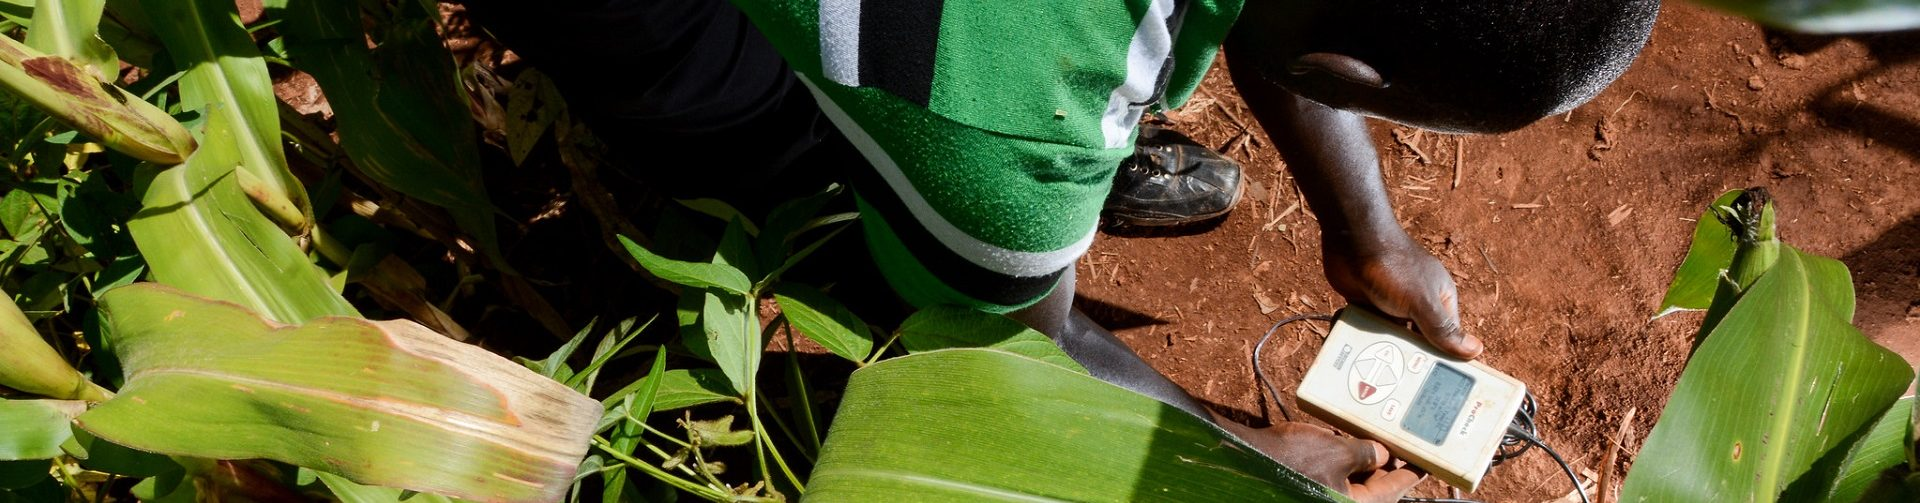 How to encourage farmers to adopt sustainable agriculture